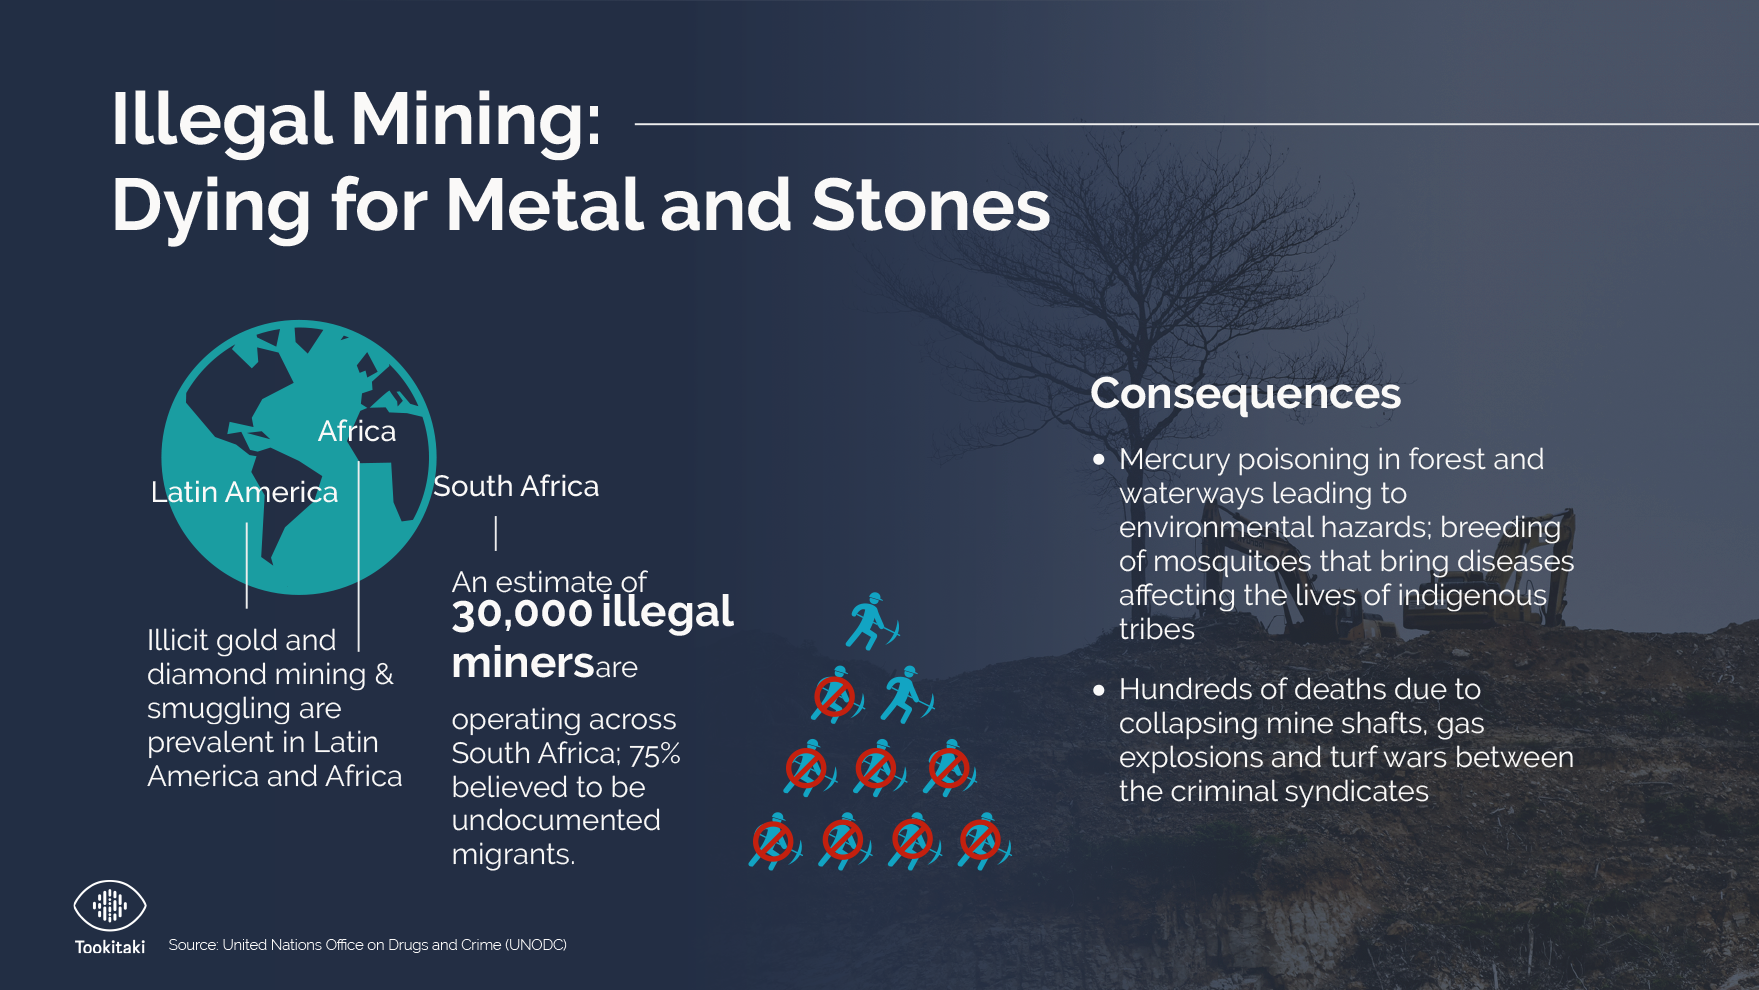 Illegal Mining: Dying for Metal and Stones